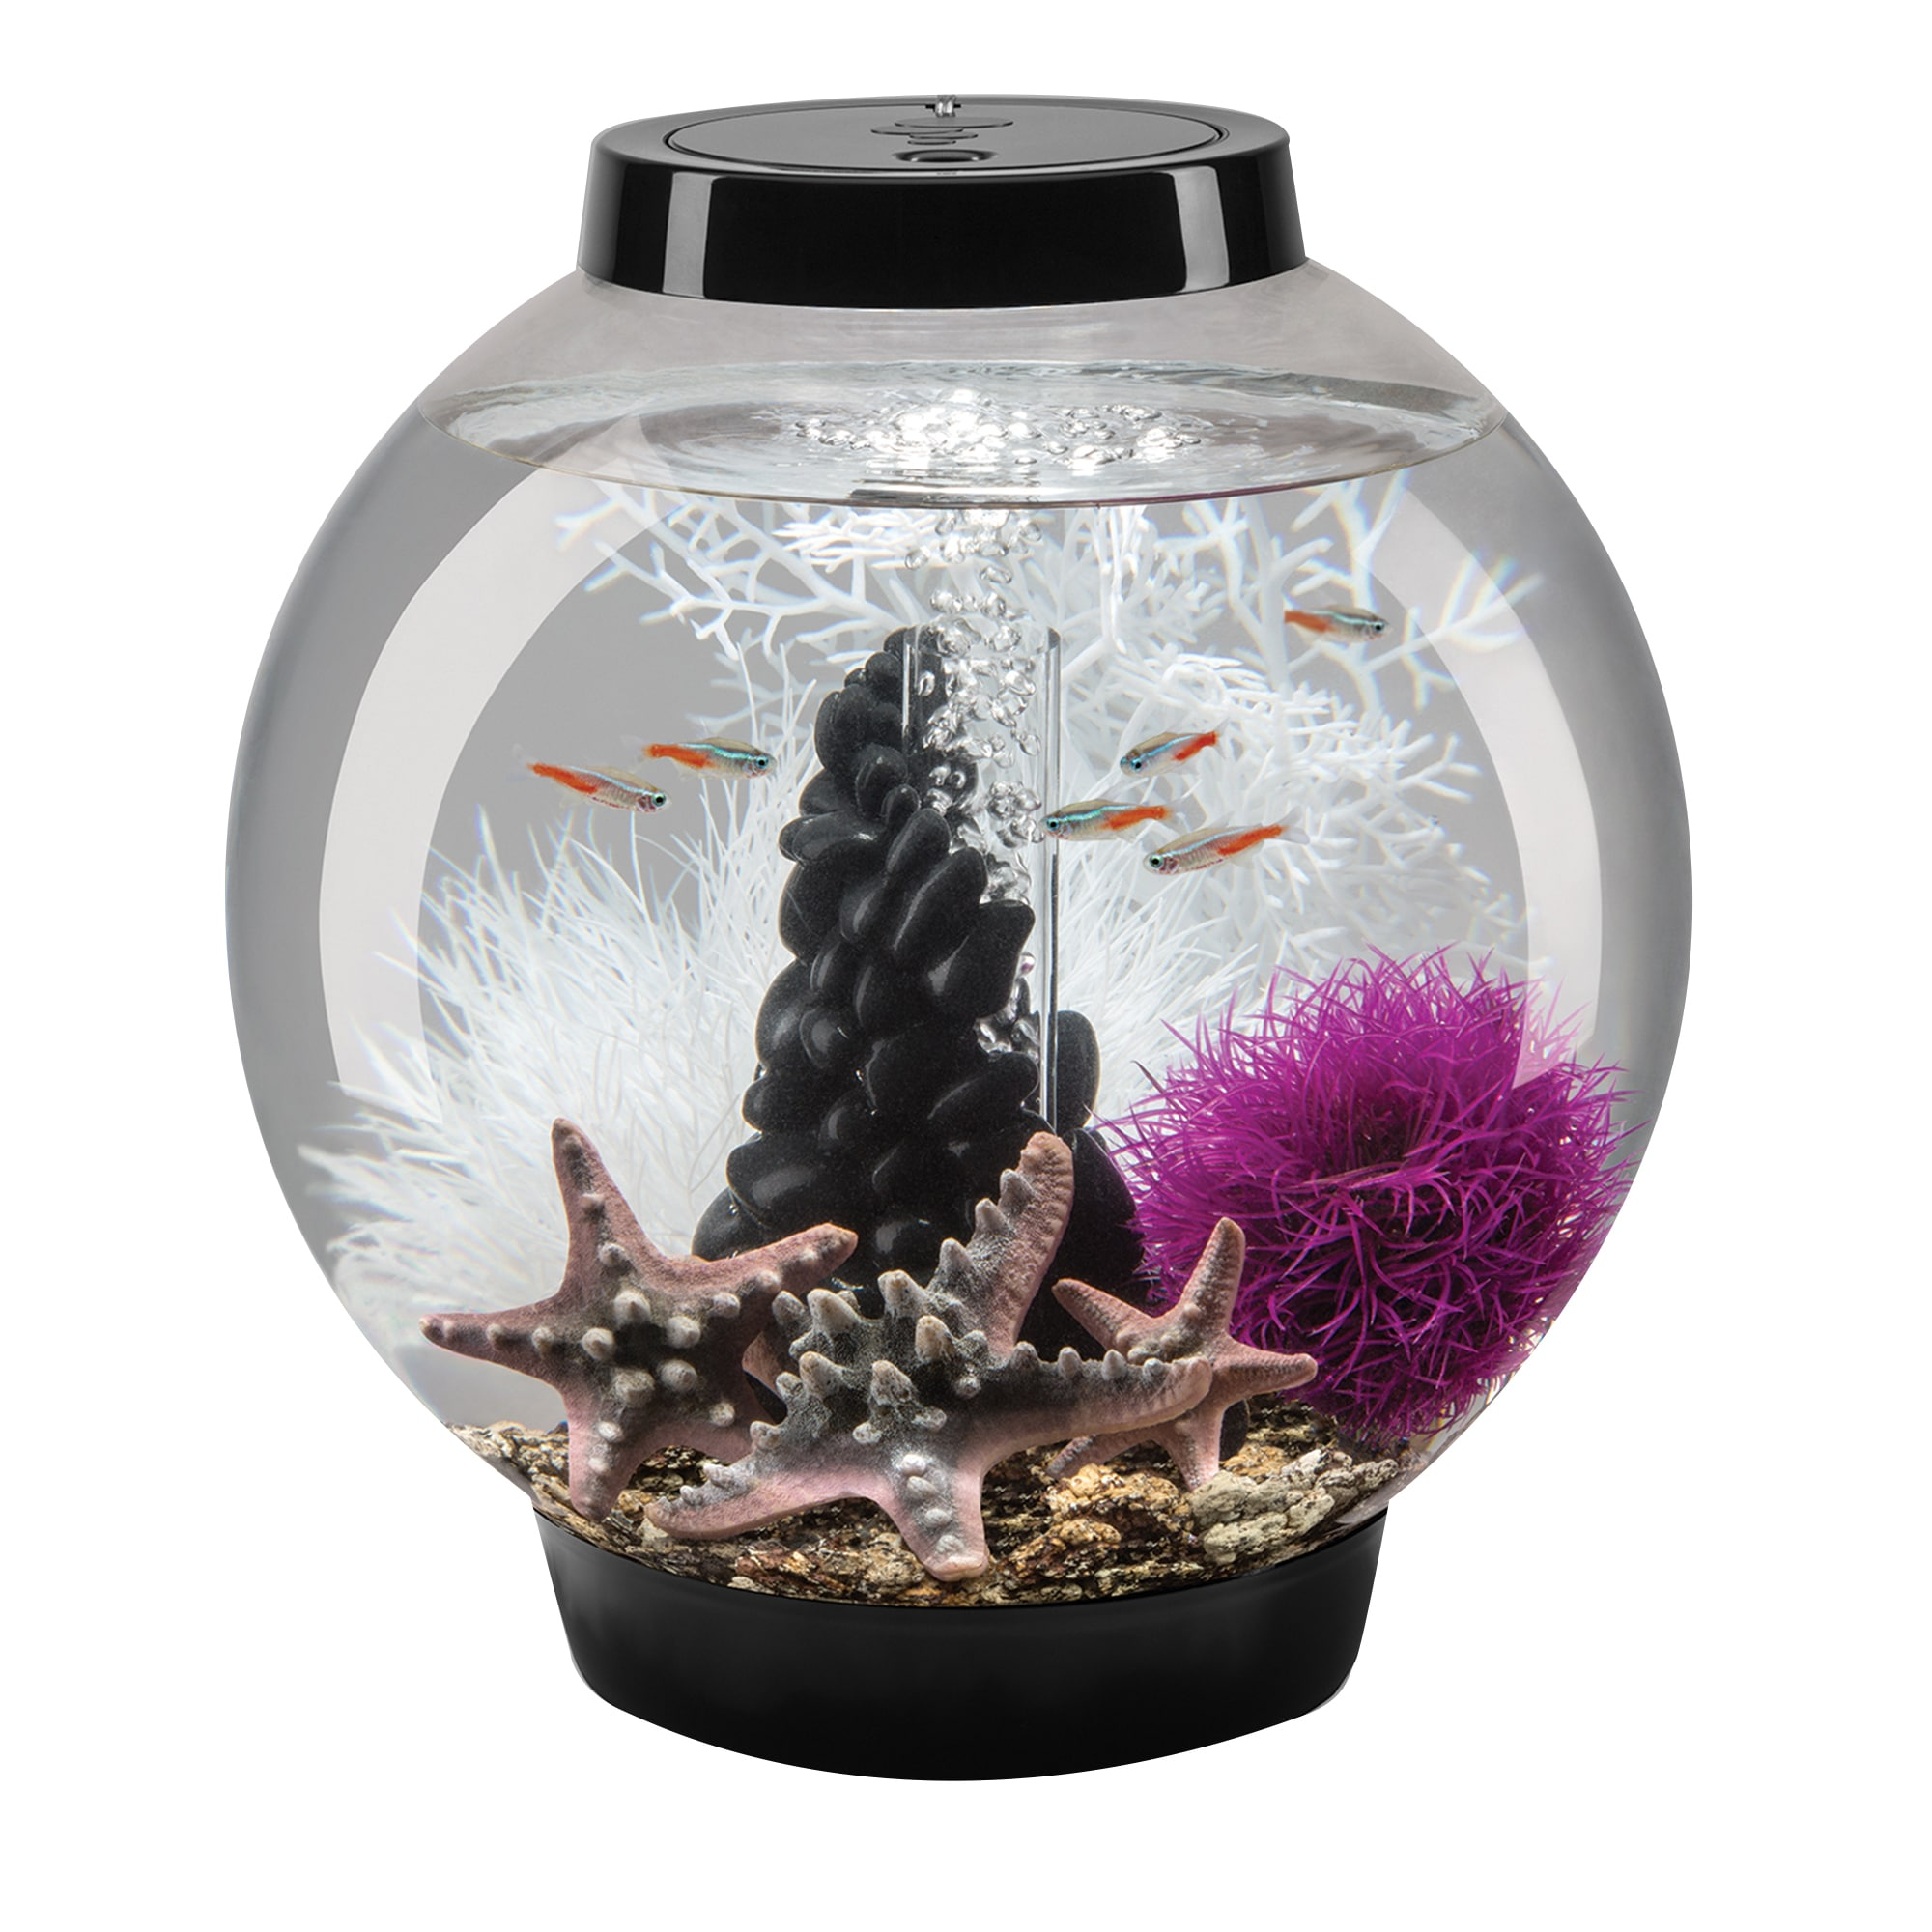 biOrb Classic Black 15 Aquarium (Black), Size Up to 10 Ga...